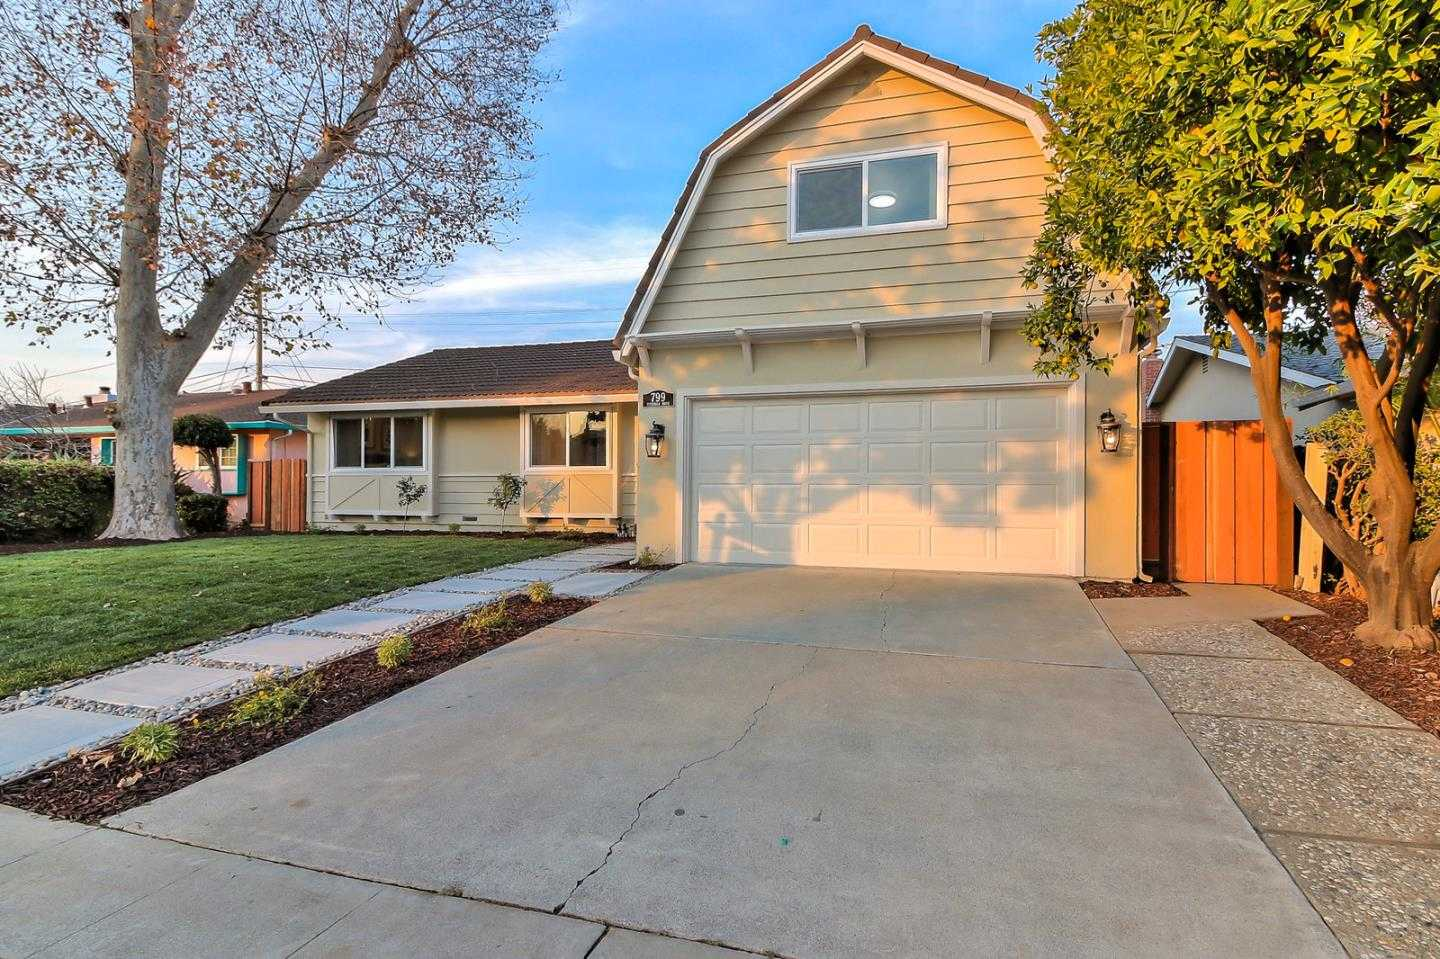 $1,988,000 - 4Br/3Ba -  for Sale in Sunnyvale